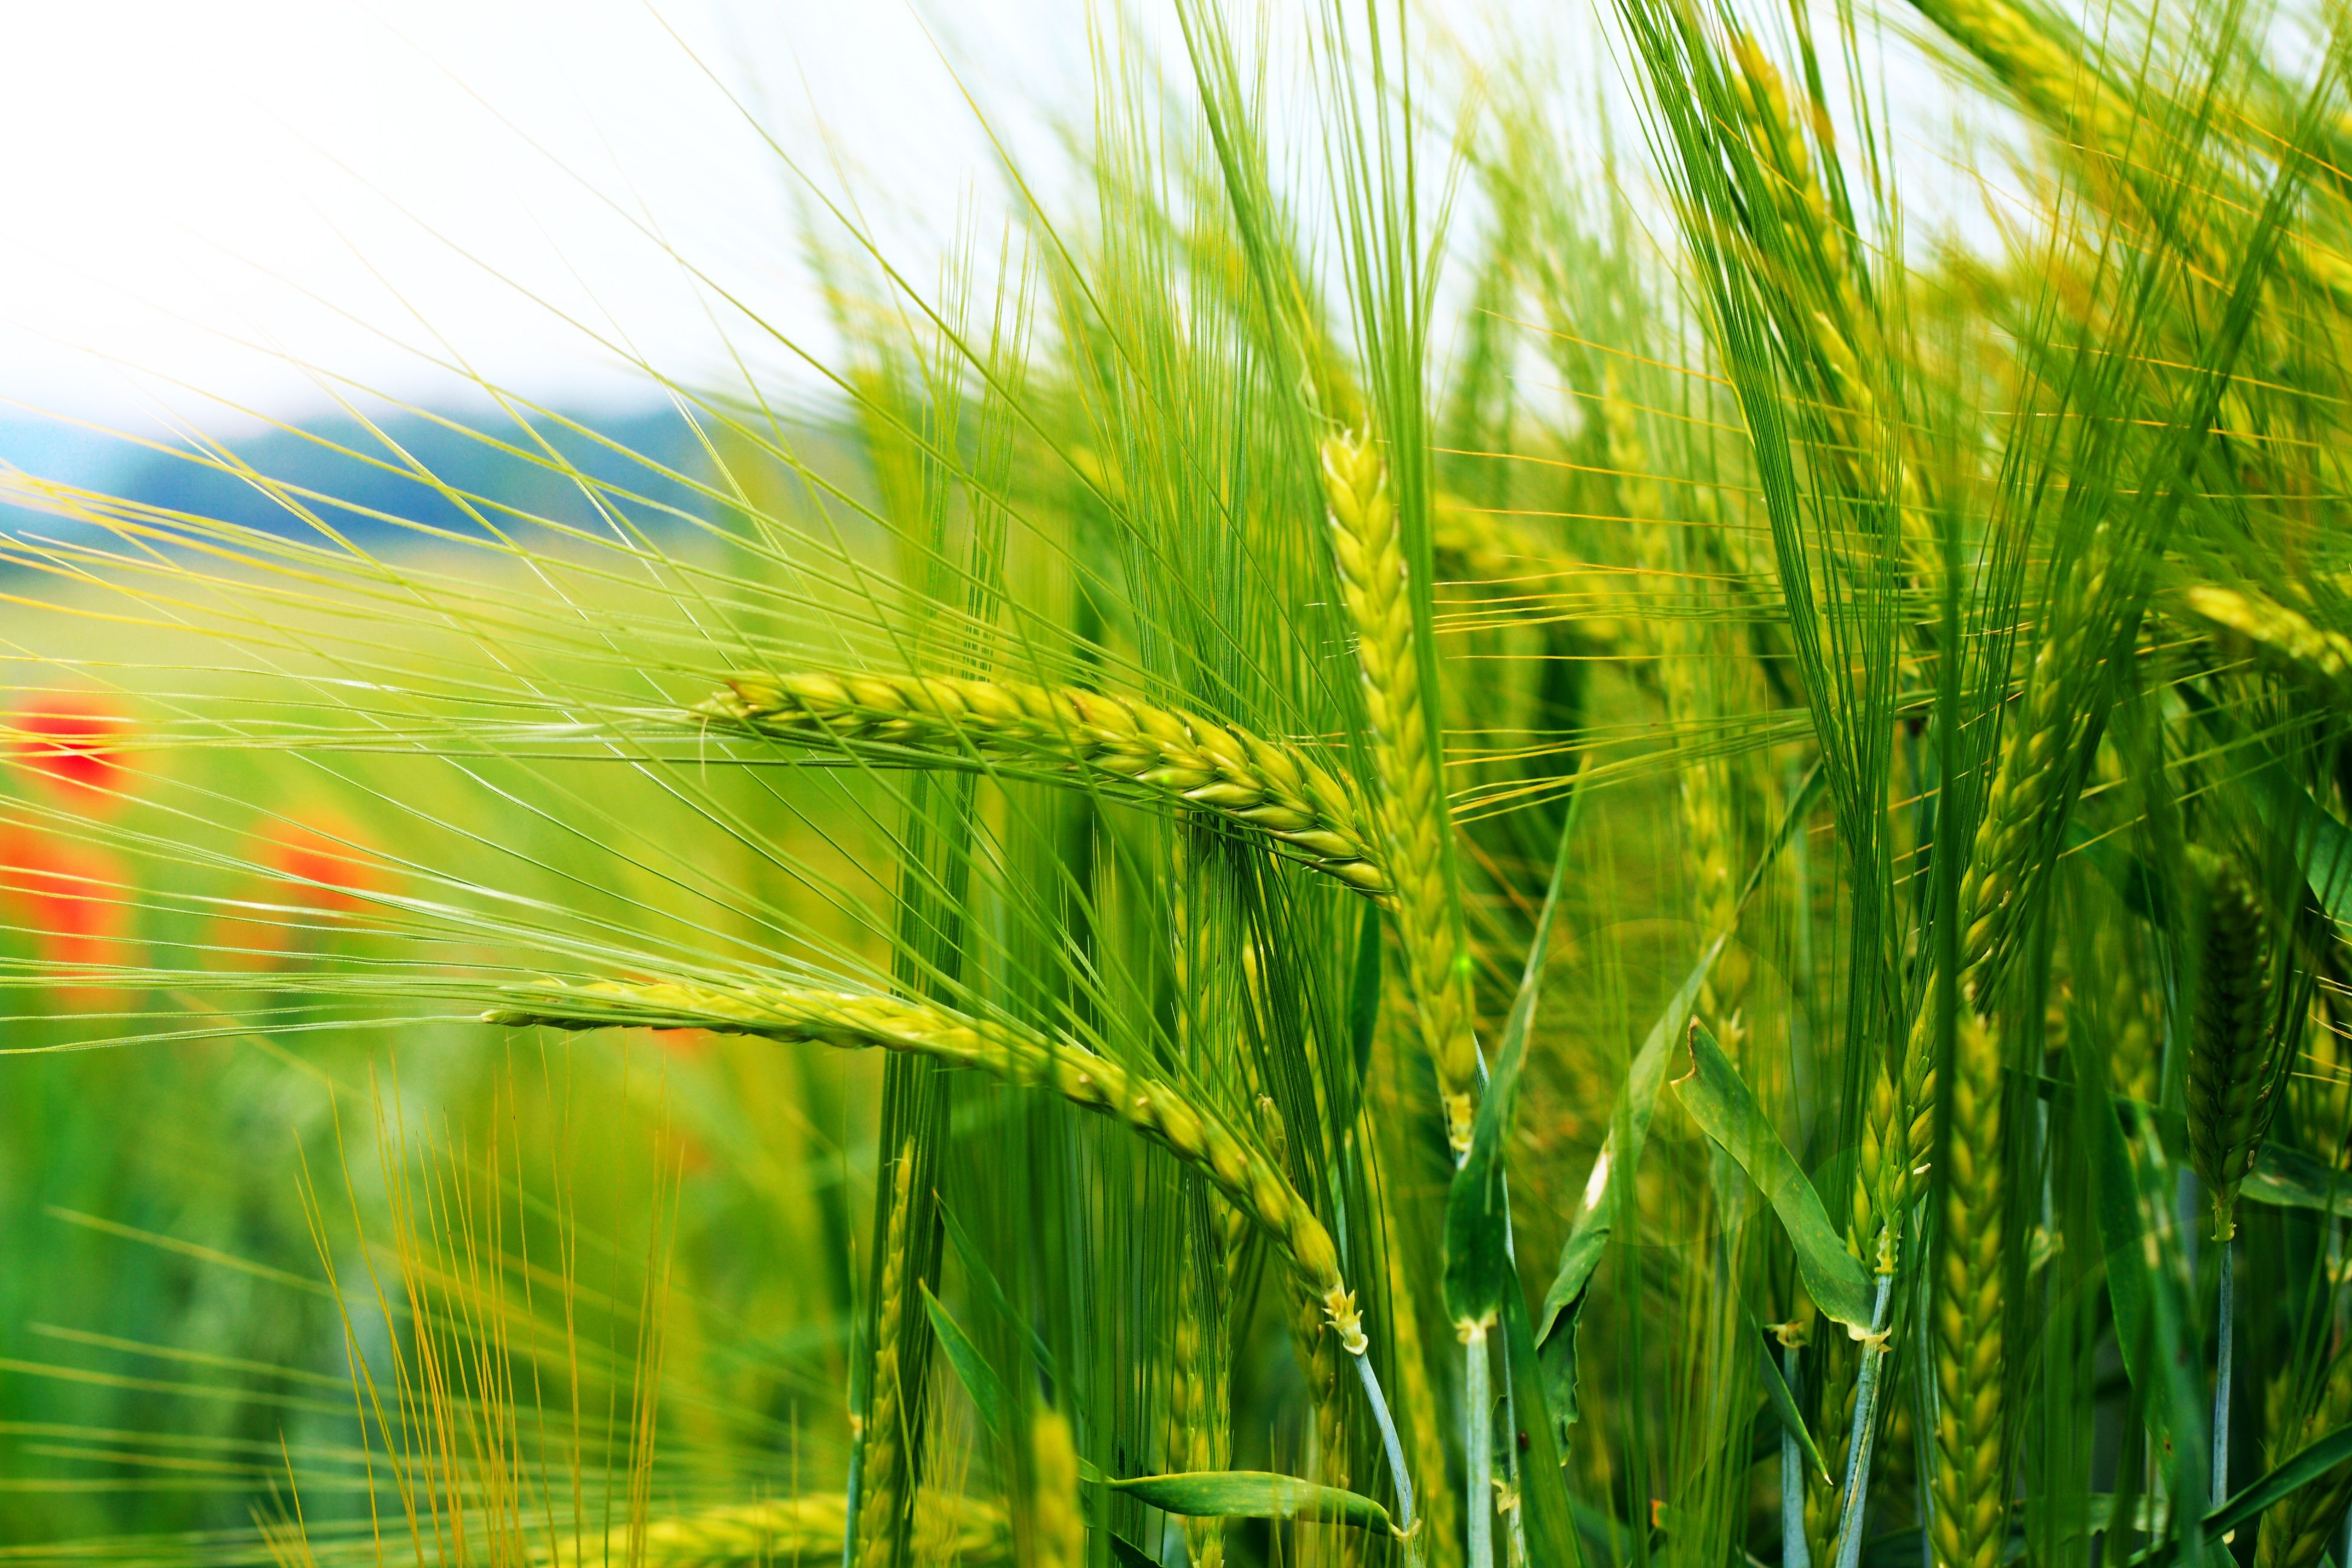 Pin By Rachael On Corn Idea One Grass Stock Images Free Ears Of Corn